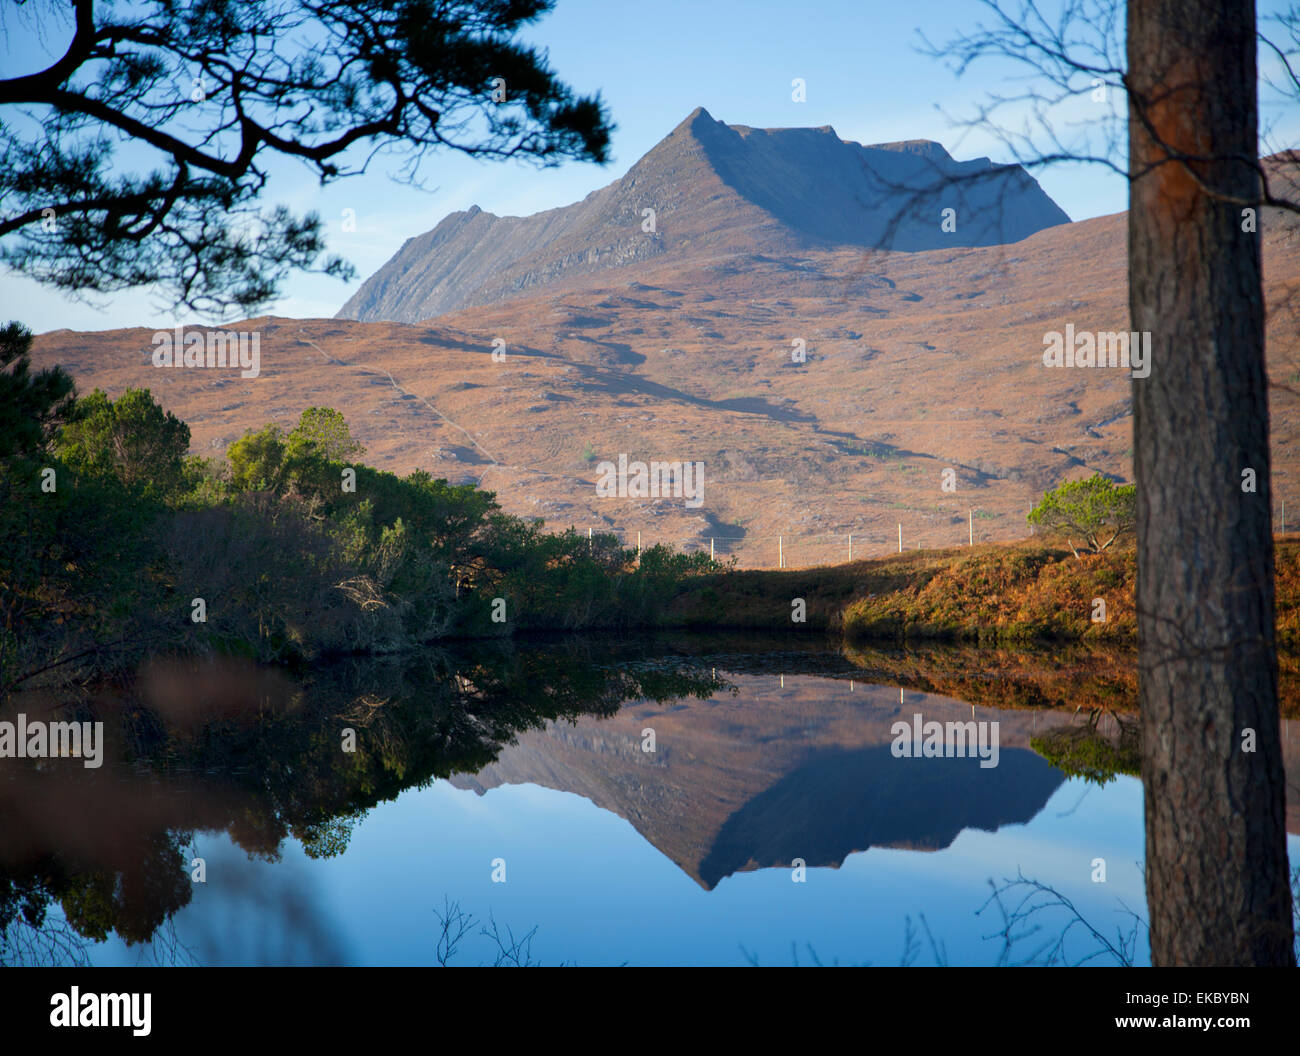 View of calm loch and mountains, North West Highlands, Scotland, UK - Stock Image